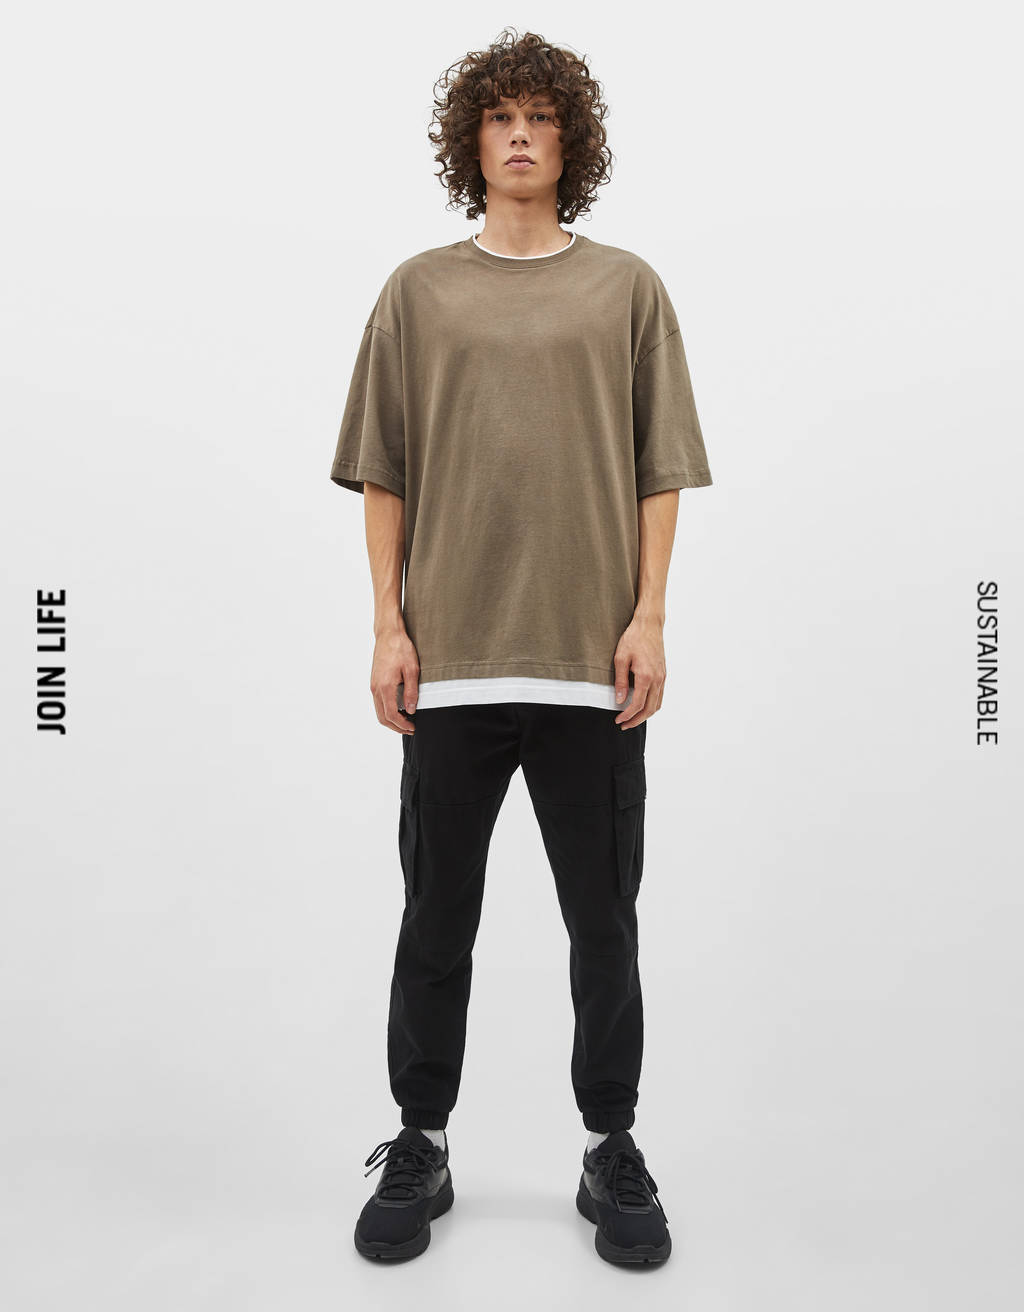 T-shirt with contrast trim